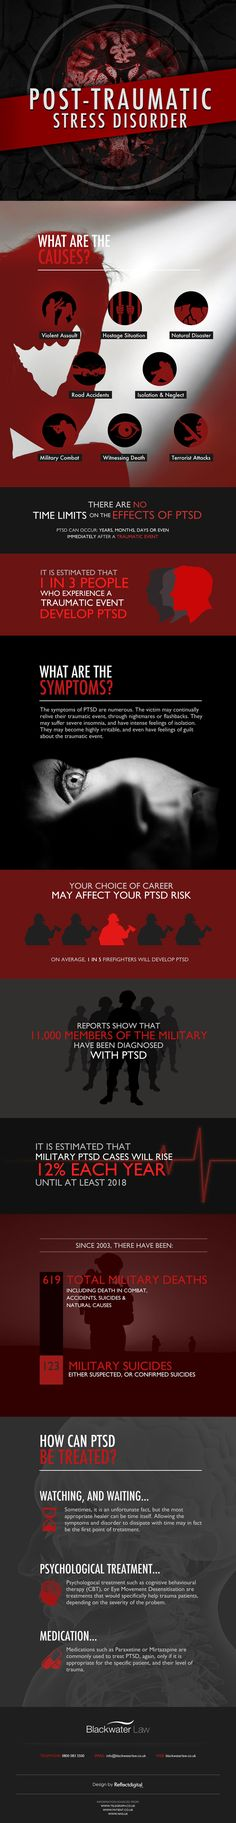 Post-traumatic stress disorder #infographic